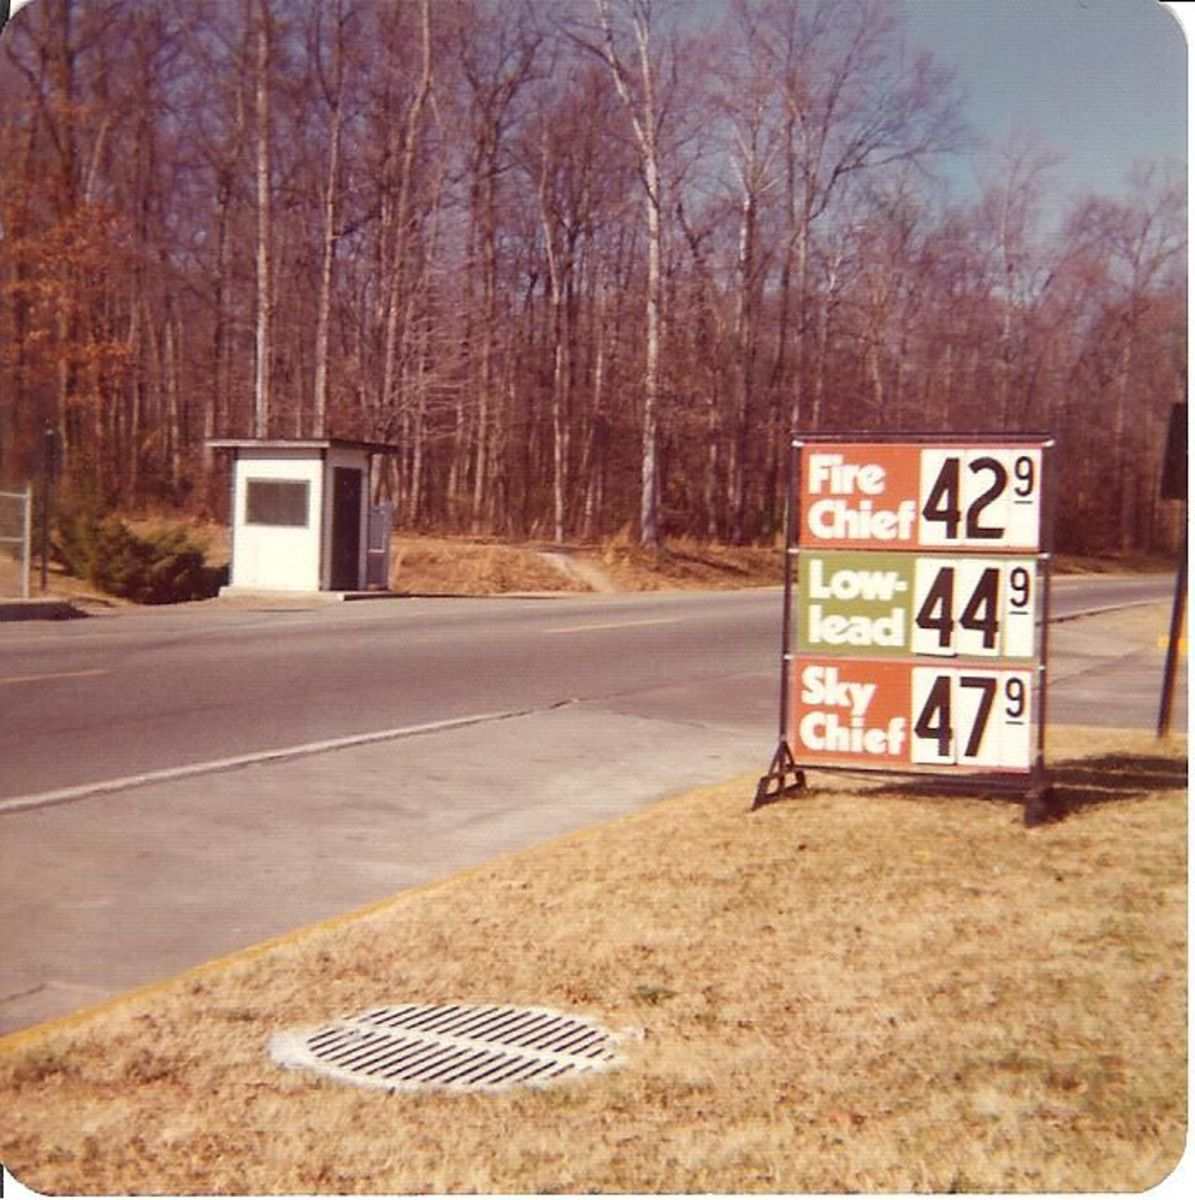 1975 is plagued with gas shortages